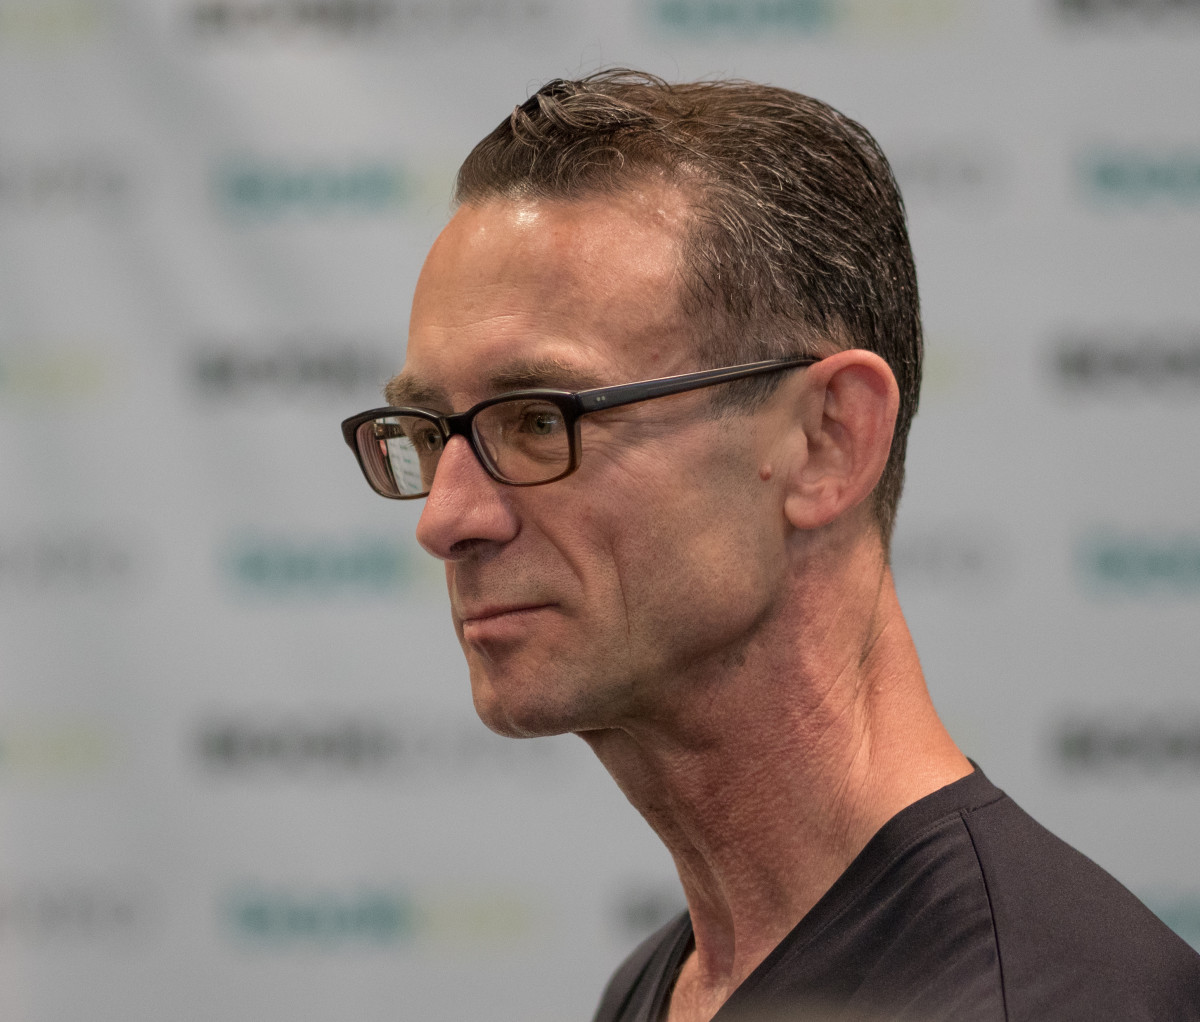 Chuck Palahniuk BookCon 2018 at the Javits Convention Center in New York City.